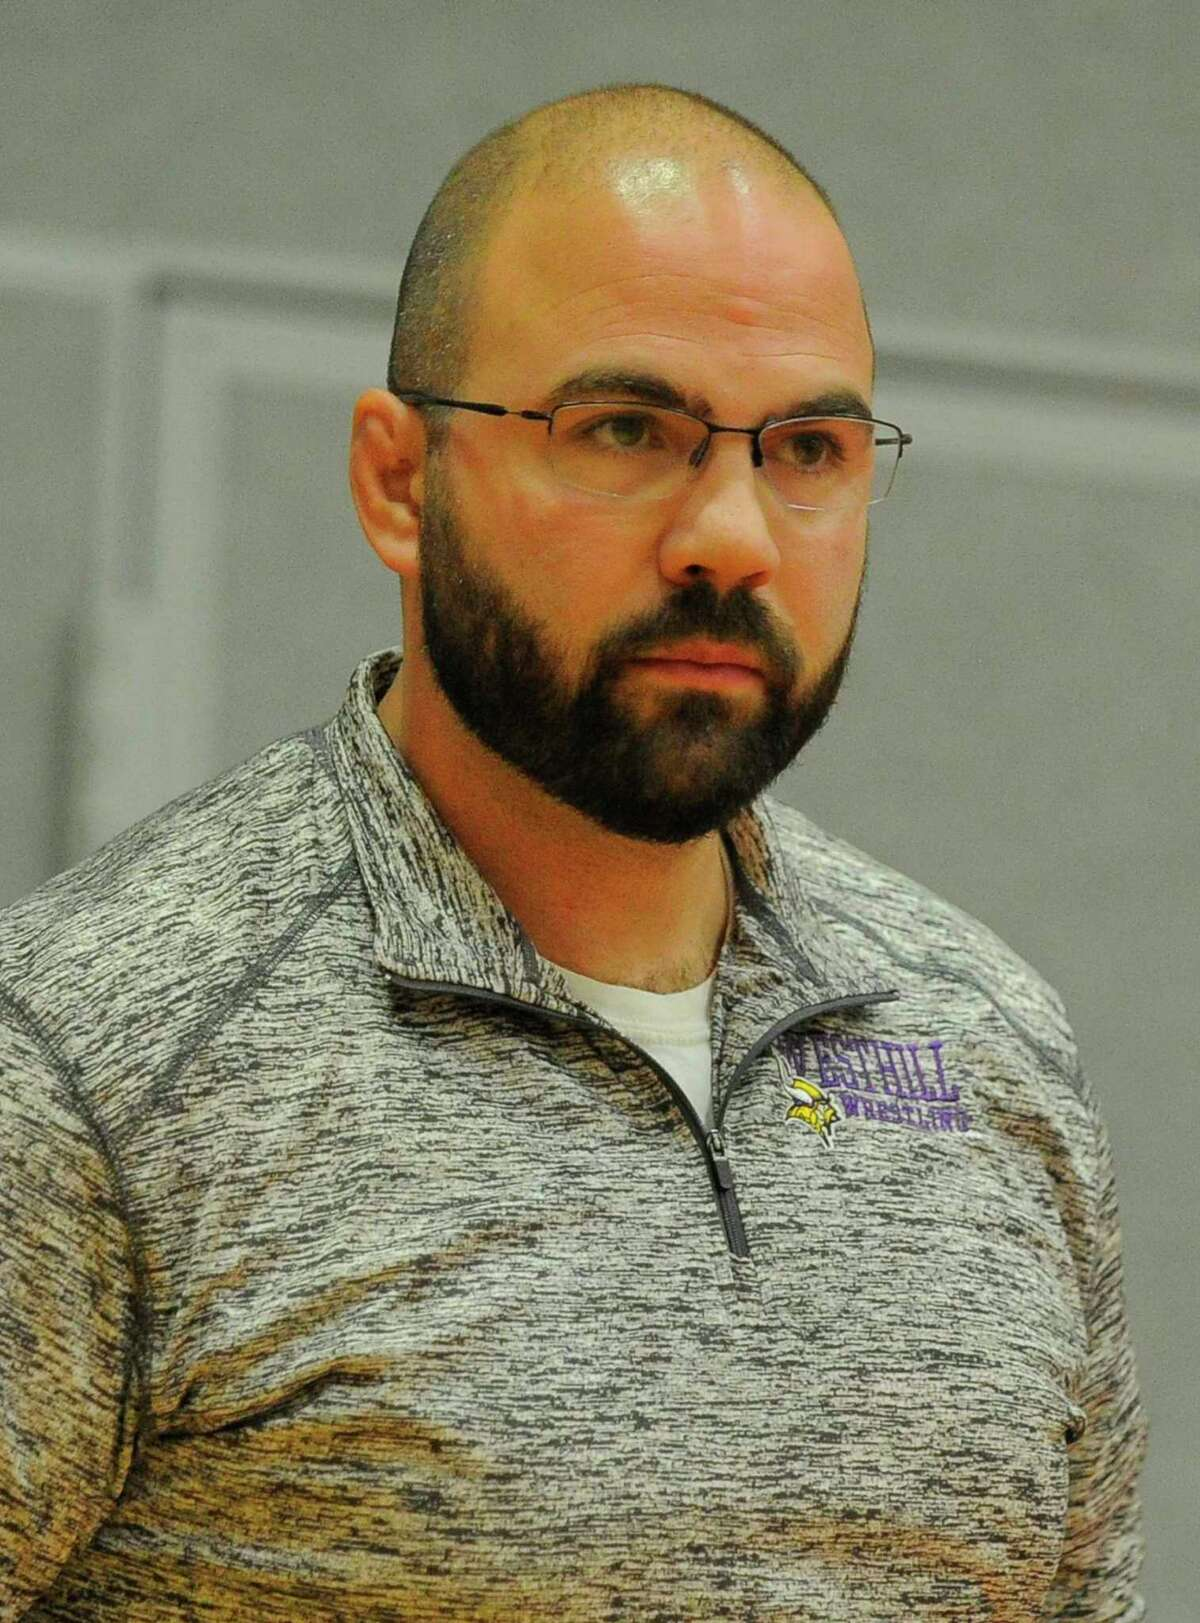 Tom Pereira Westhill Wrestling Coach File image from Feb. 1, 2017